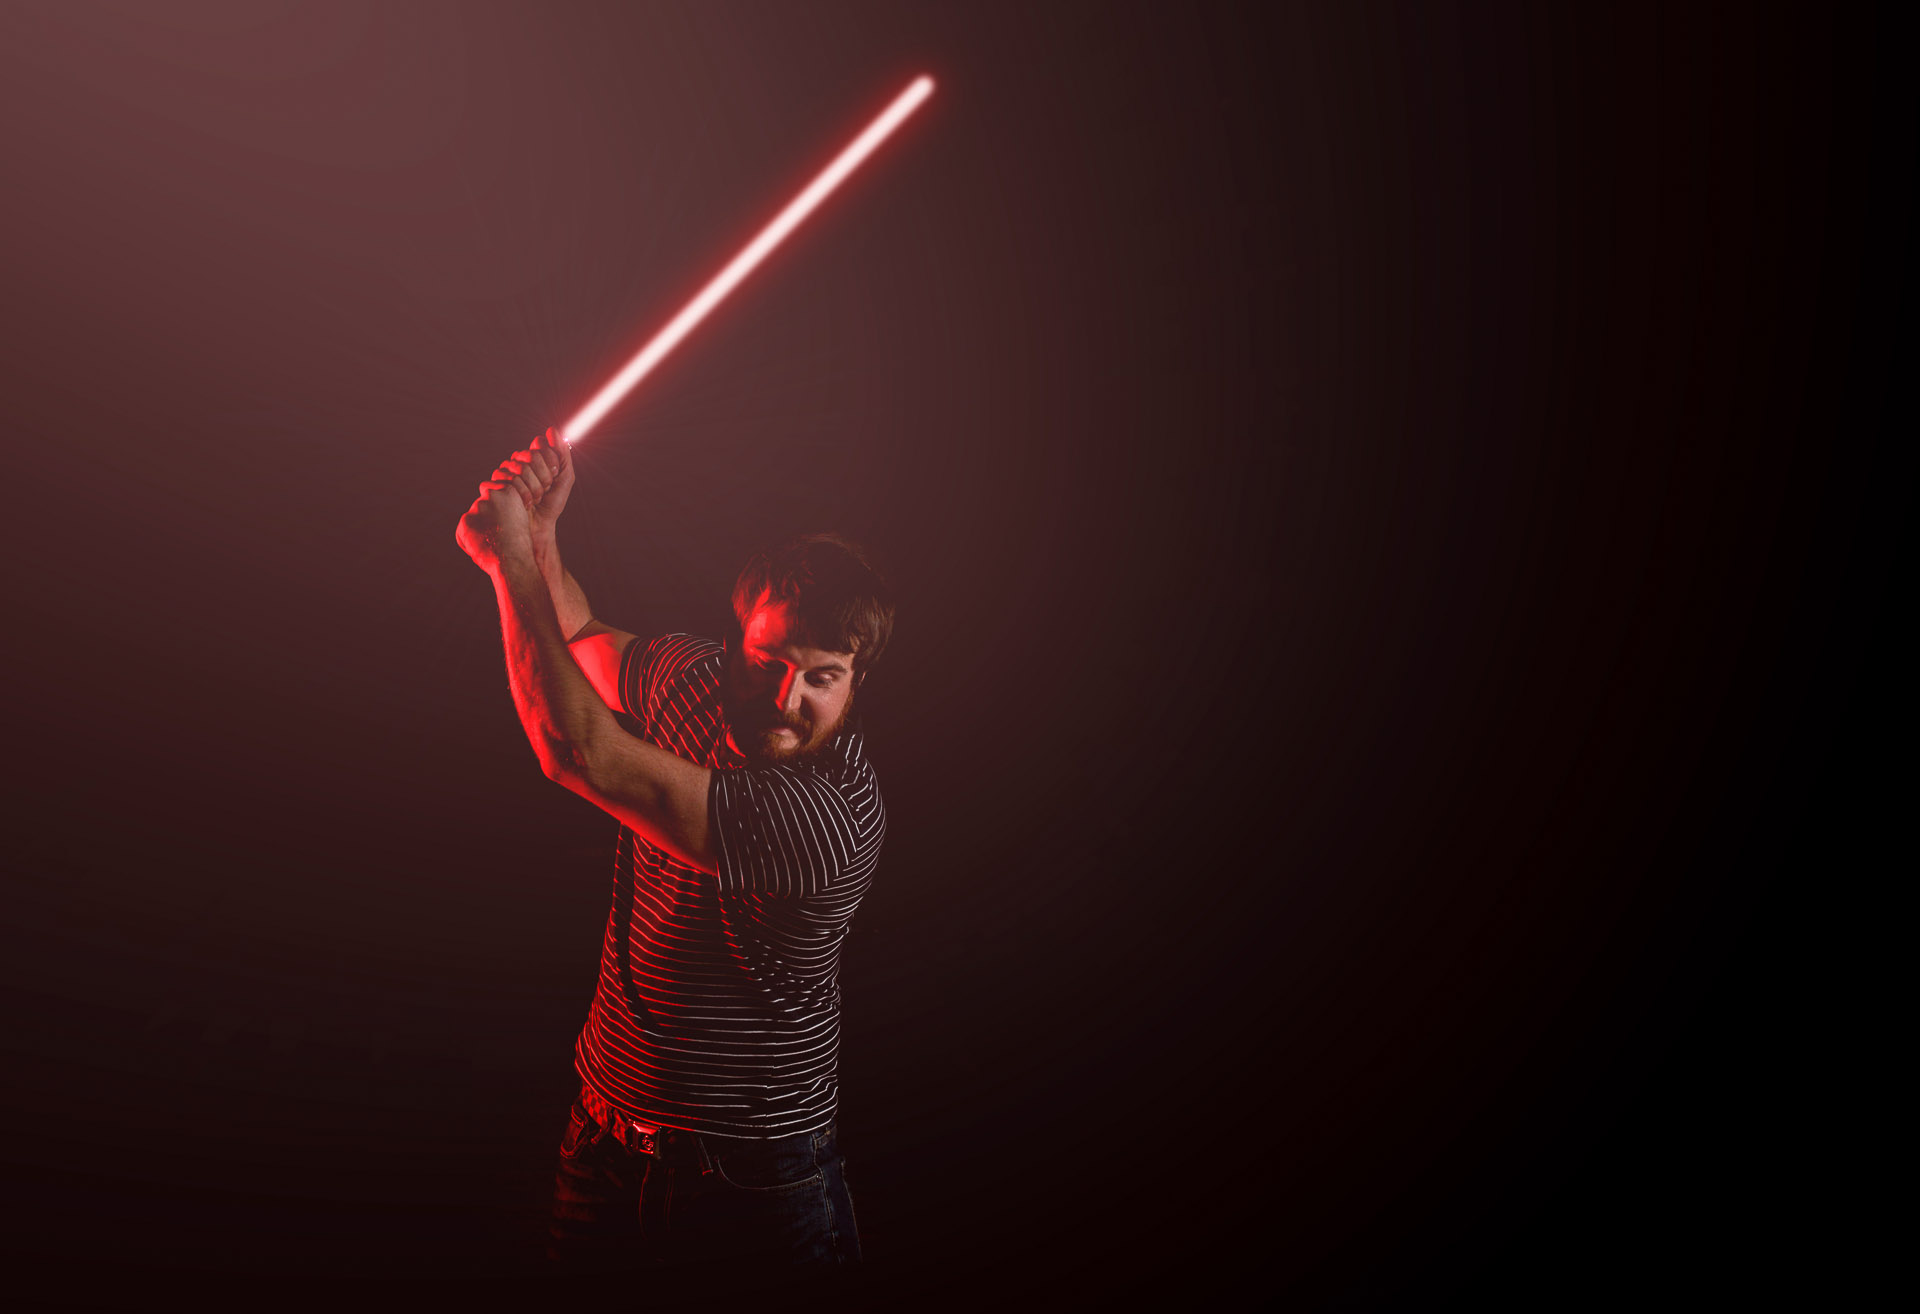 Behind the Scenes: A Star-Wars Themed Lightsaber-Wielding Portrait Picture